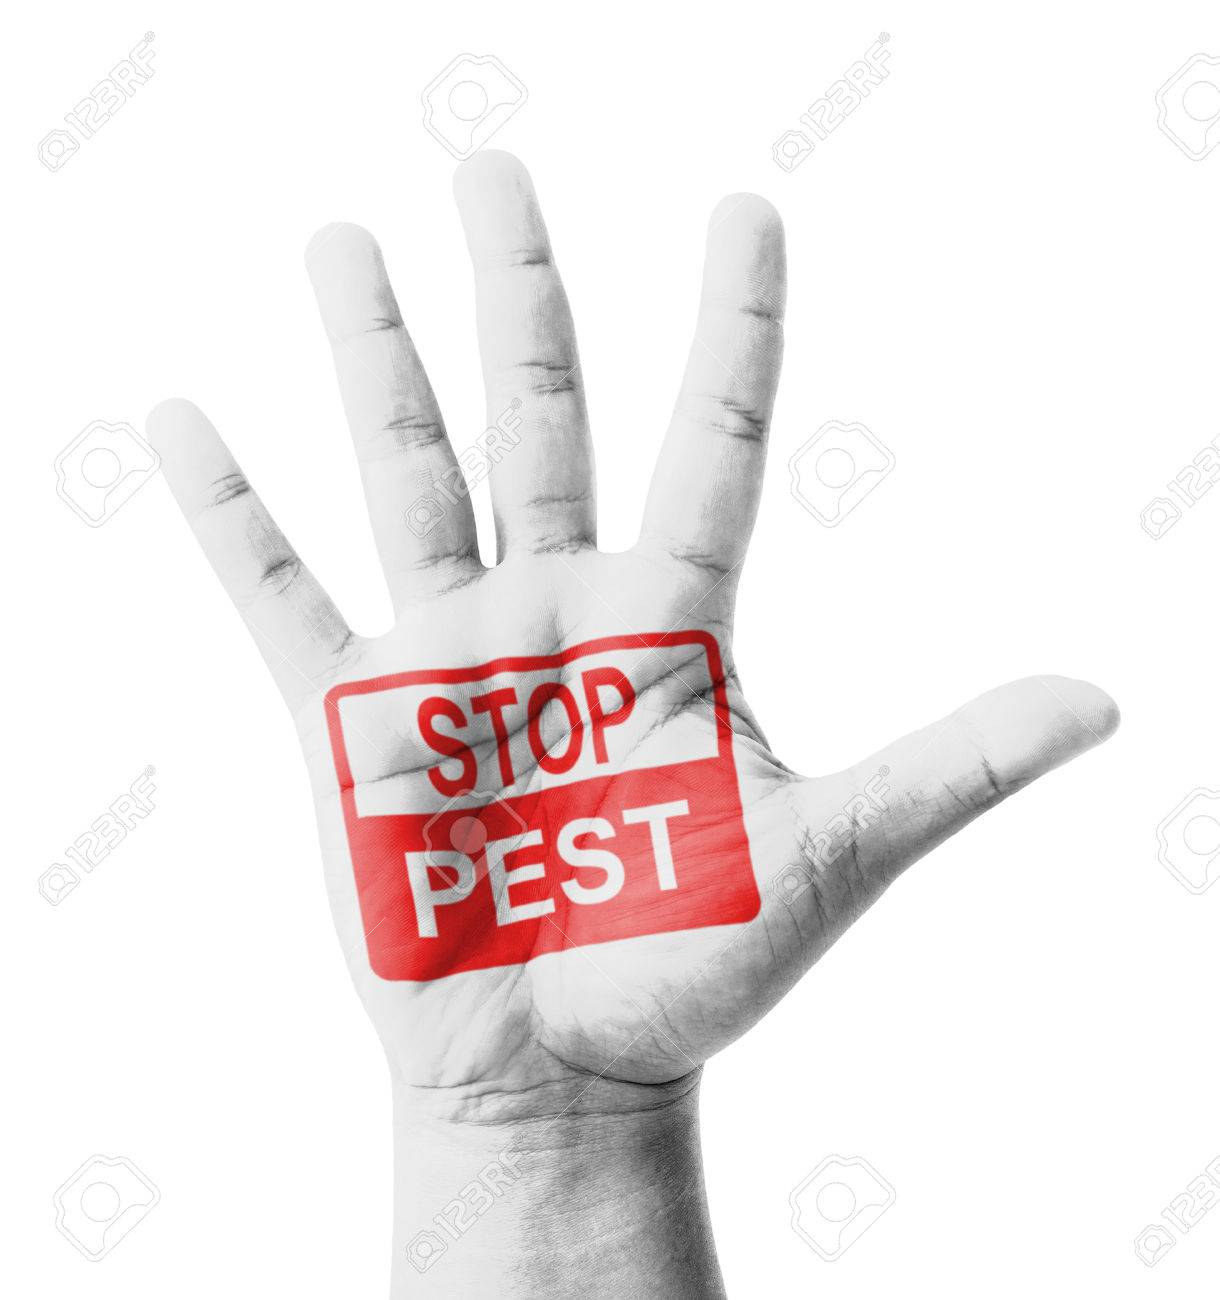 Open hand raised, Stop Pest sign painted, multi purpose concept - isolated on white background Stock Photo - 28292786